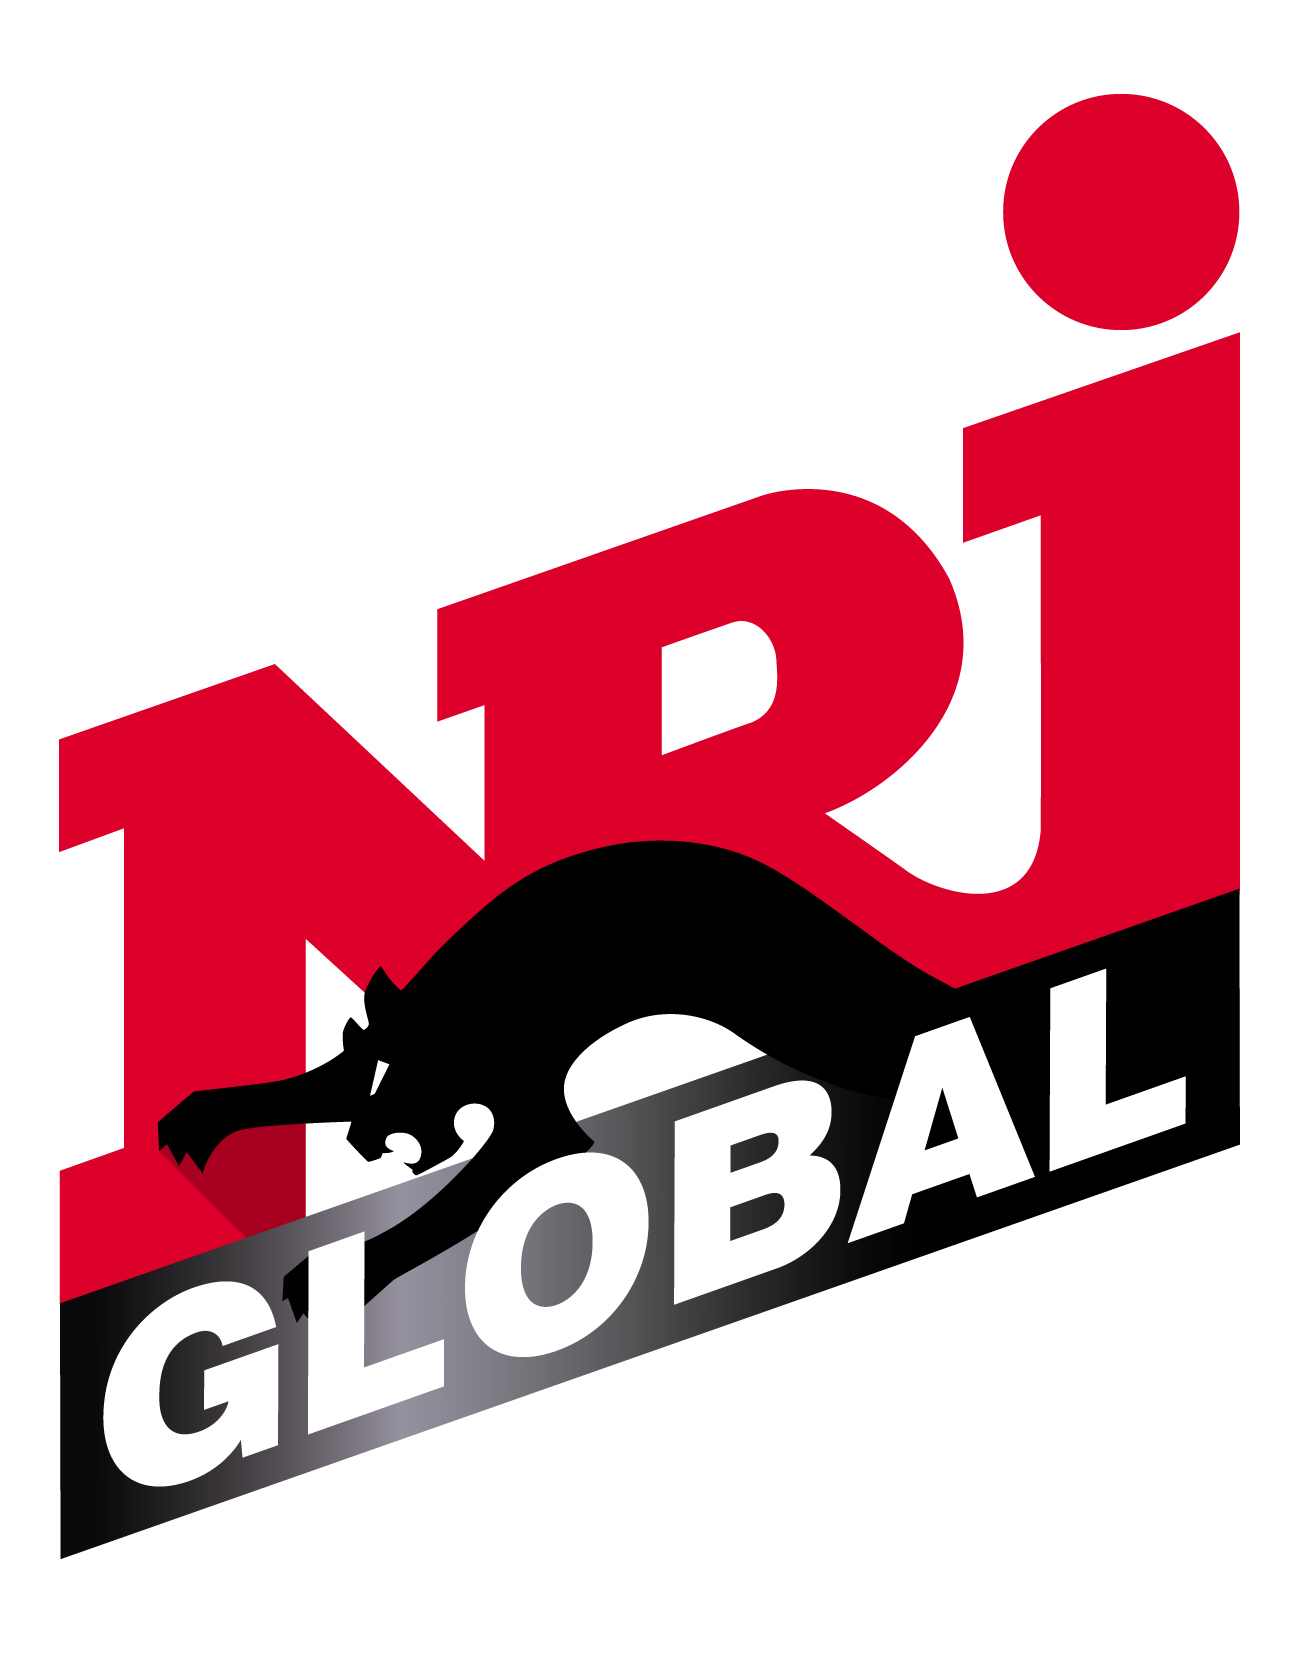 NRJ Global récompense l'audace